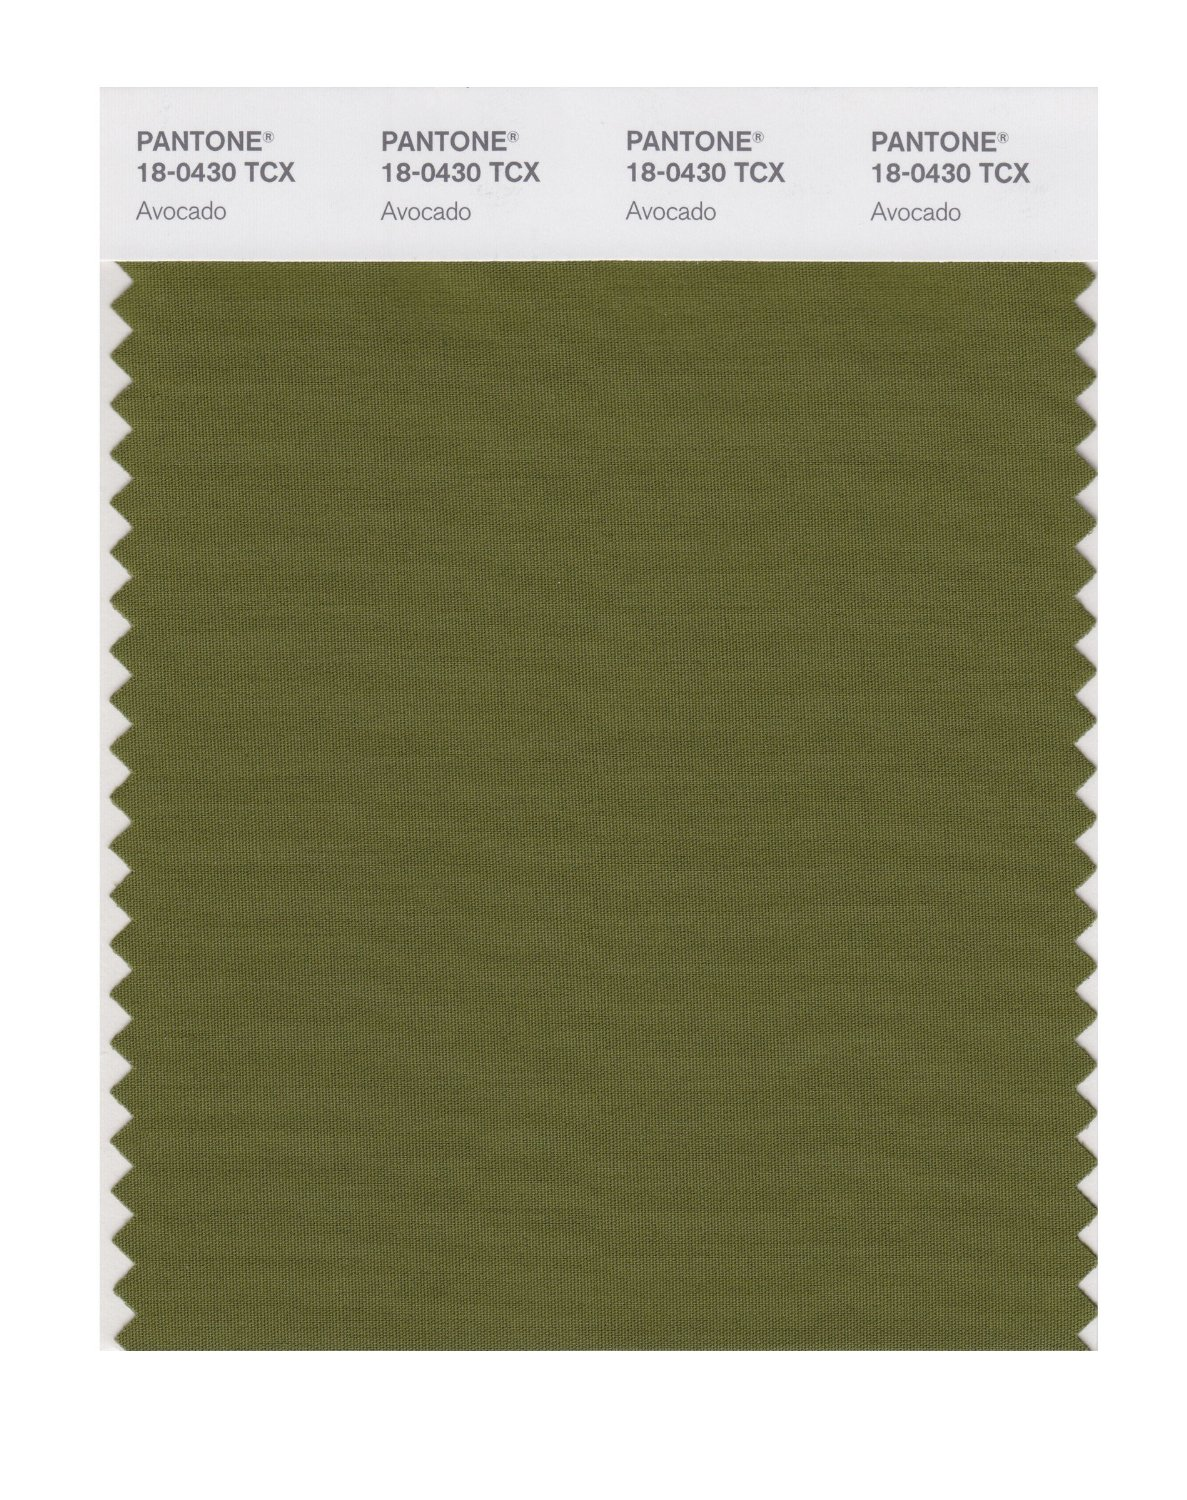 Pantone Smart Swatch 18-0430 Avocado